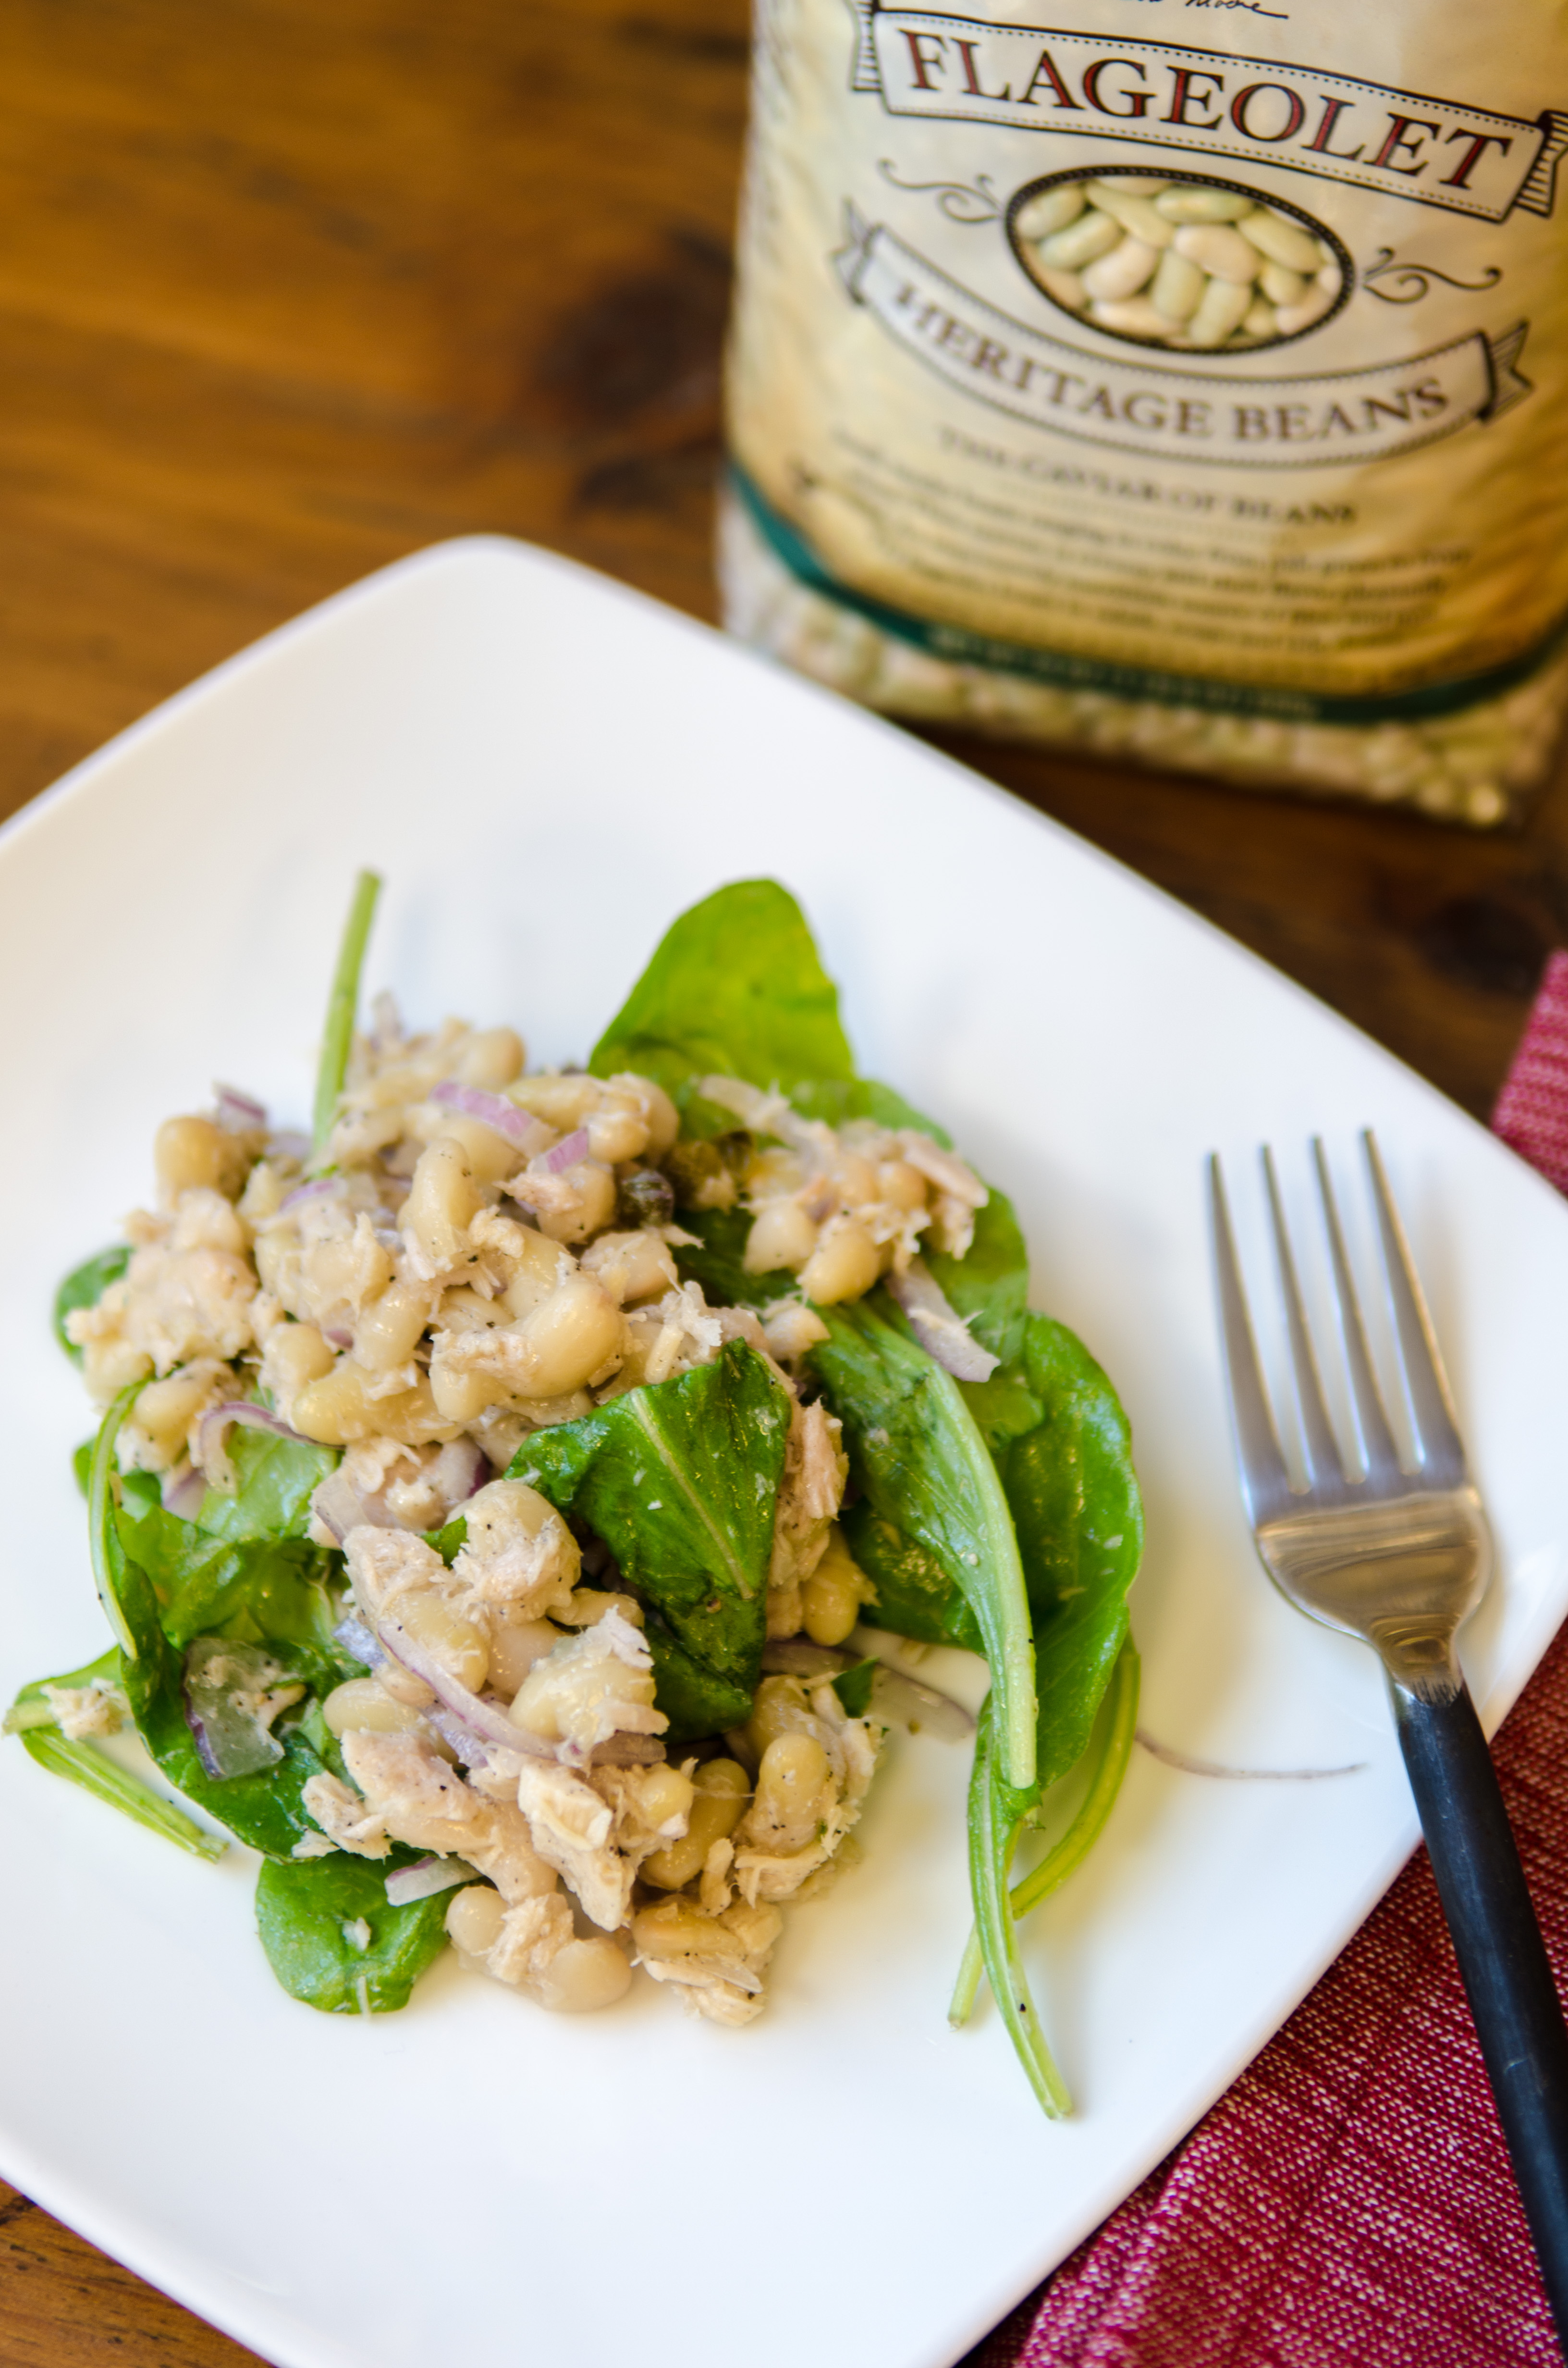 Flageolet & Tuna Salad : This light and refreshing flageolet salad uses oil, vinegar and capers for a zesty dressing that won't weigh you down with mayonnaise. These fresh flavors pair beautifully with creamy French flageolet beans, high-quality tuna fish and spicy arugula. This salad can be a main dish, a side or stuffed into a pita pocket for a twist on a tuna salad sandwich. // Bob's Red Mill